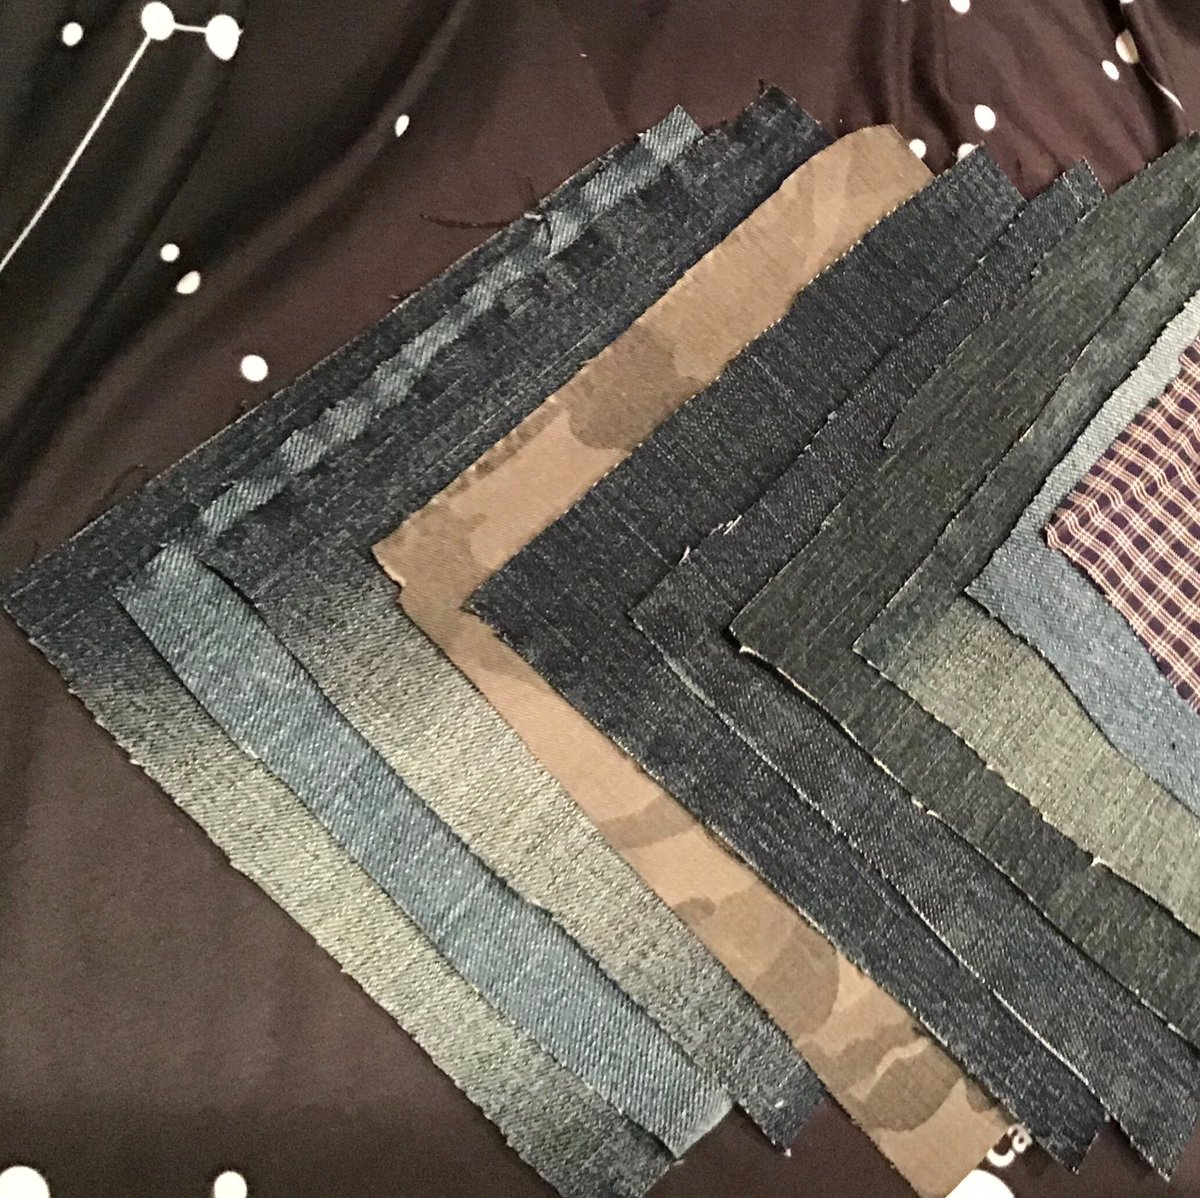 """New in my #etsy shop: Reclaimed Denim & Khaki Squares—6x6""""—12 pieces #denim #reclaimeddenim #squares #quilting https://t.co/O34UGPWpcS https://t.co/x1LaIadXUO"""